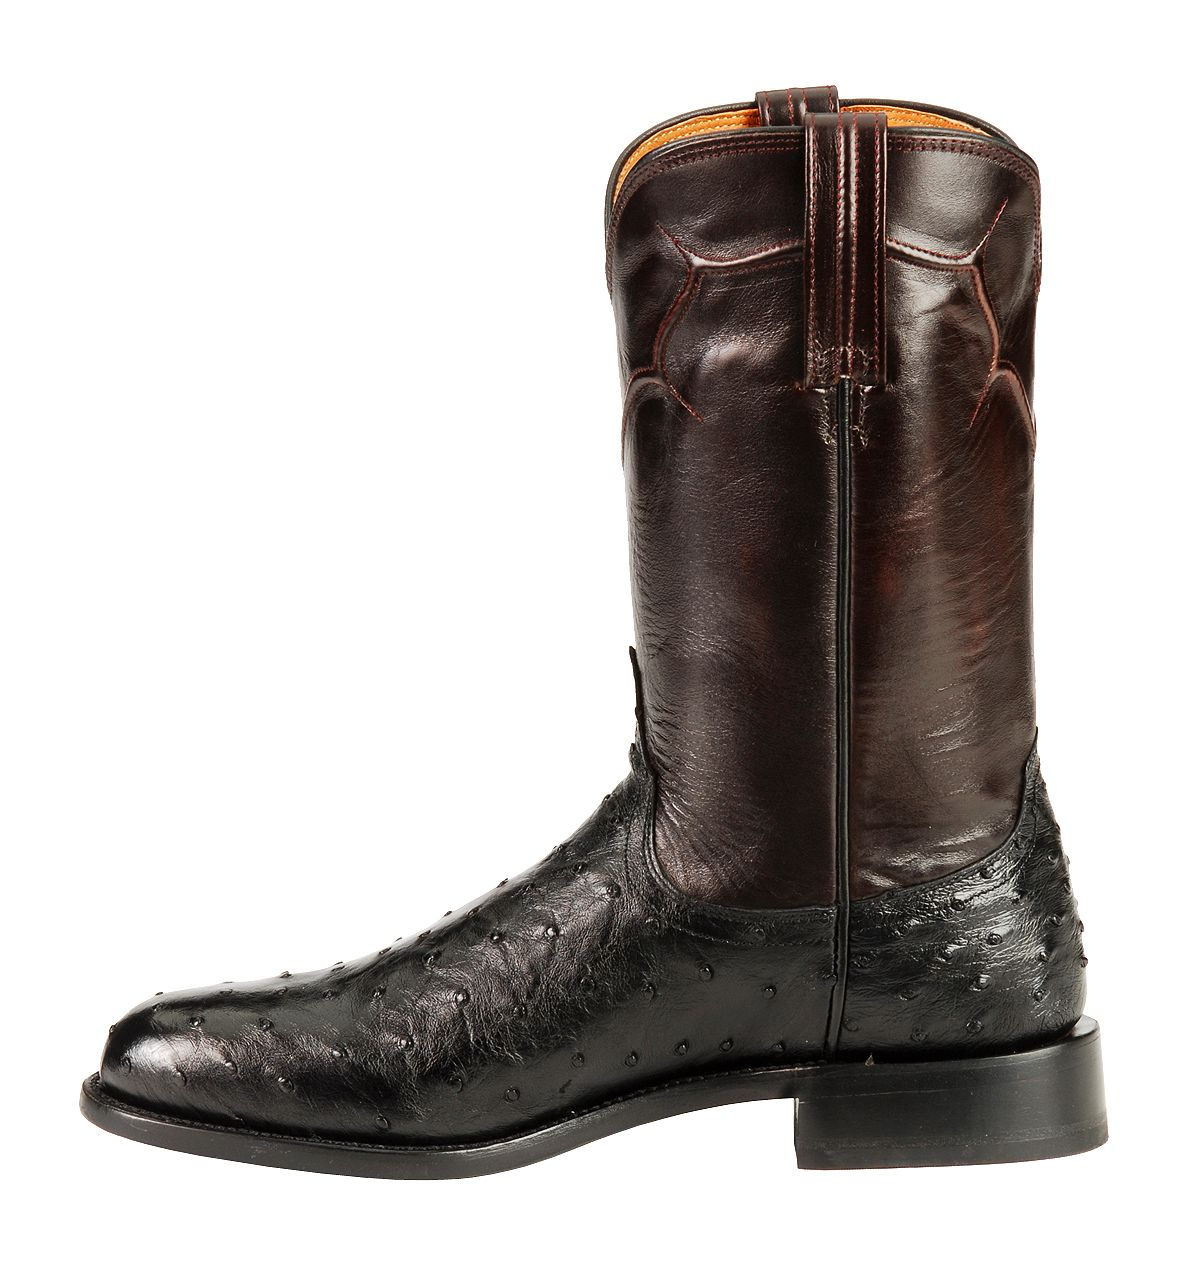 Roper Shoes For Sale